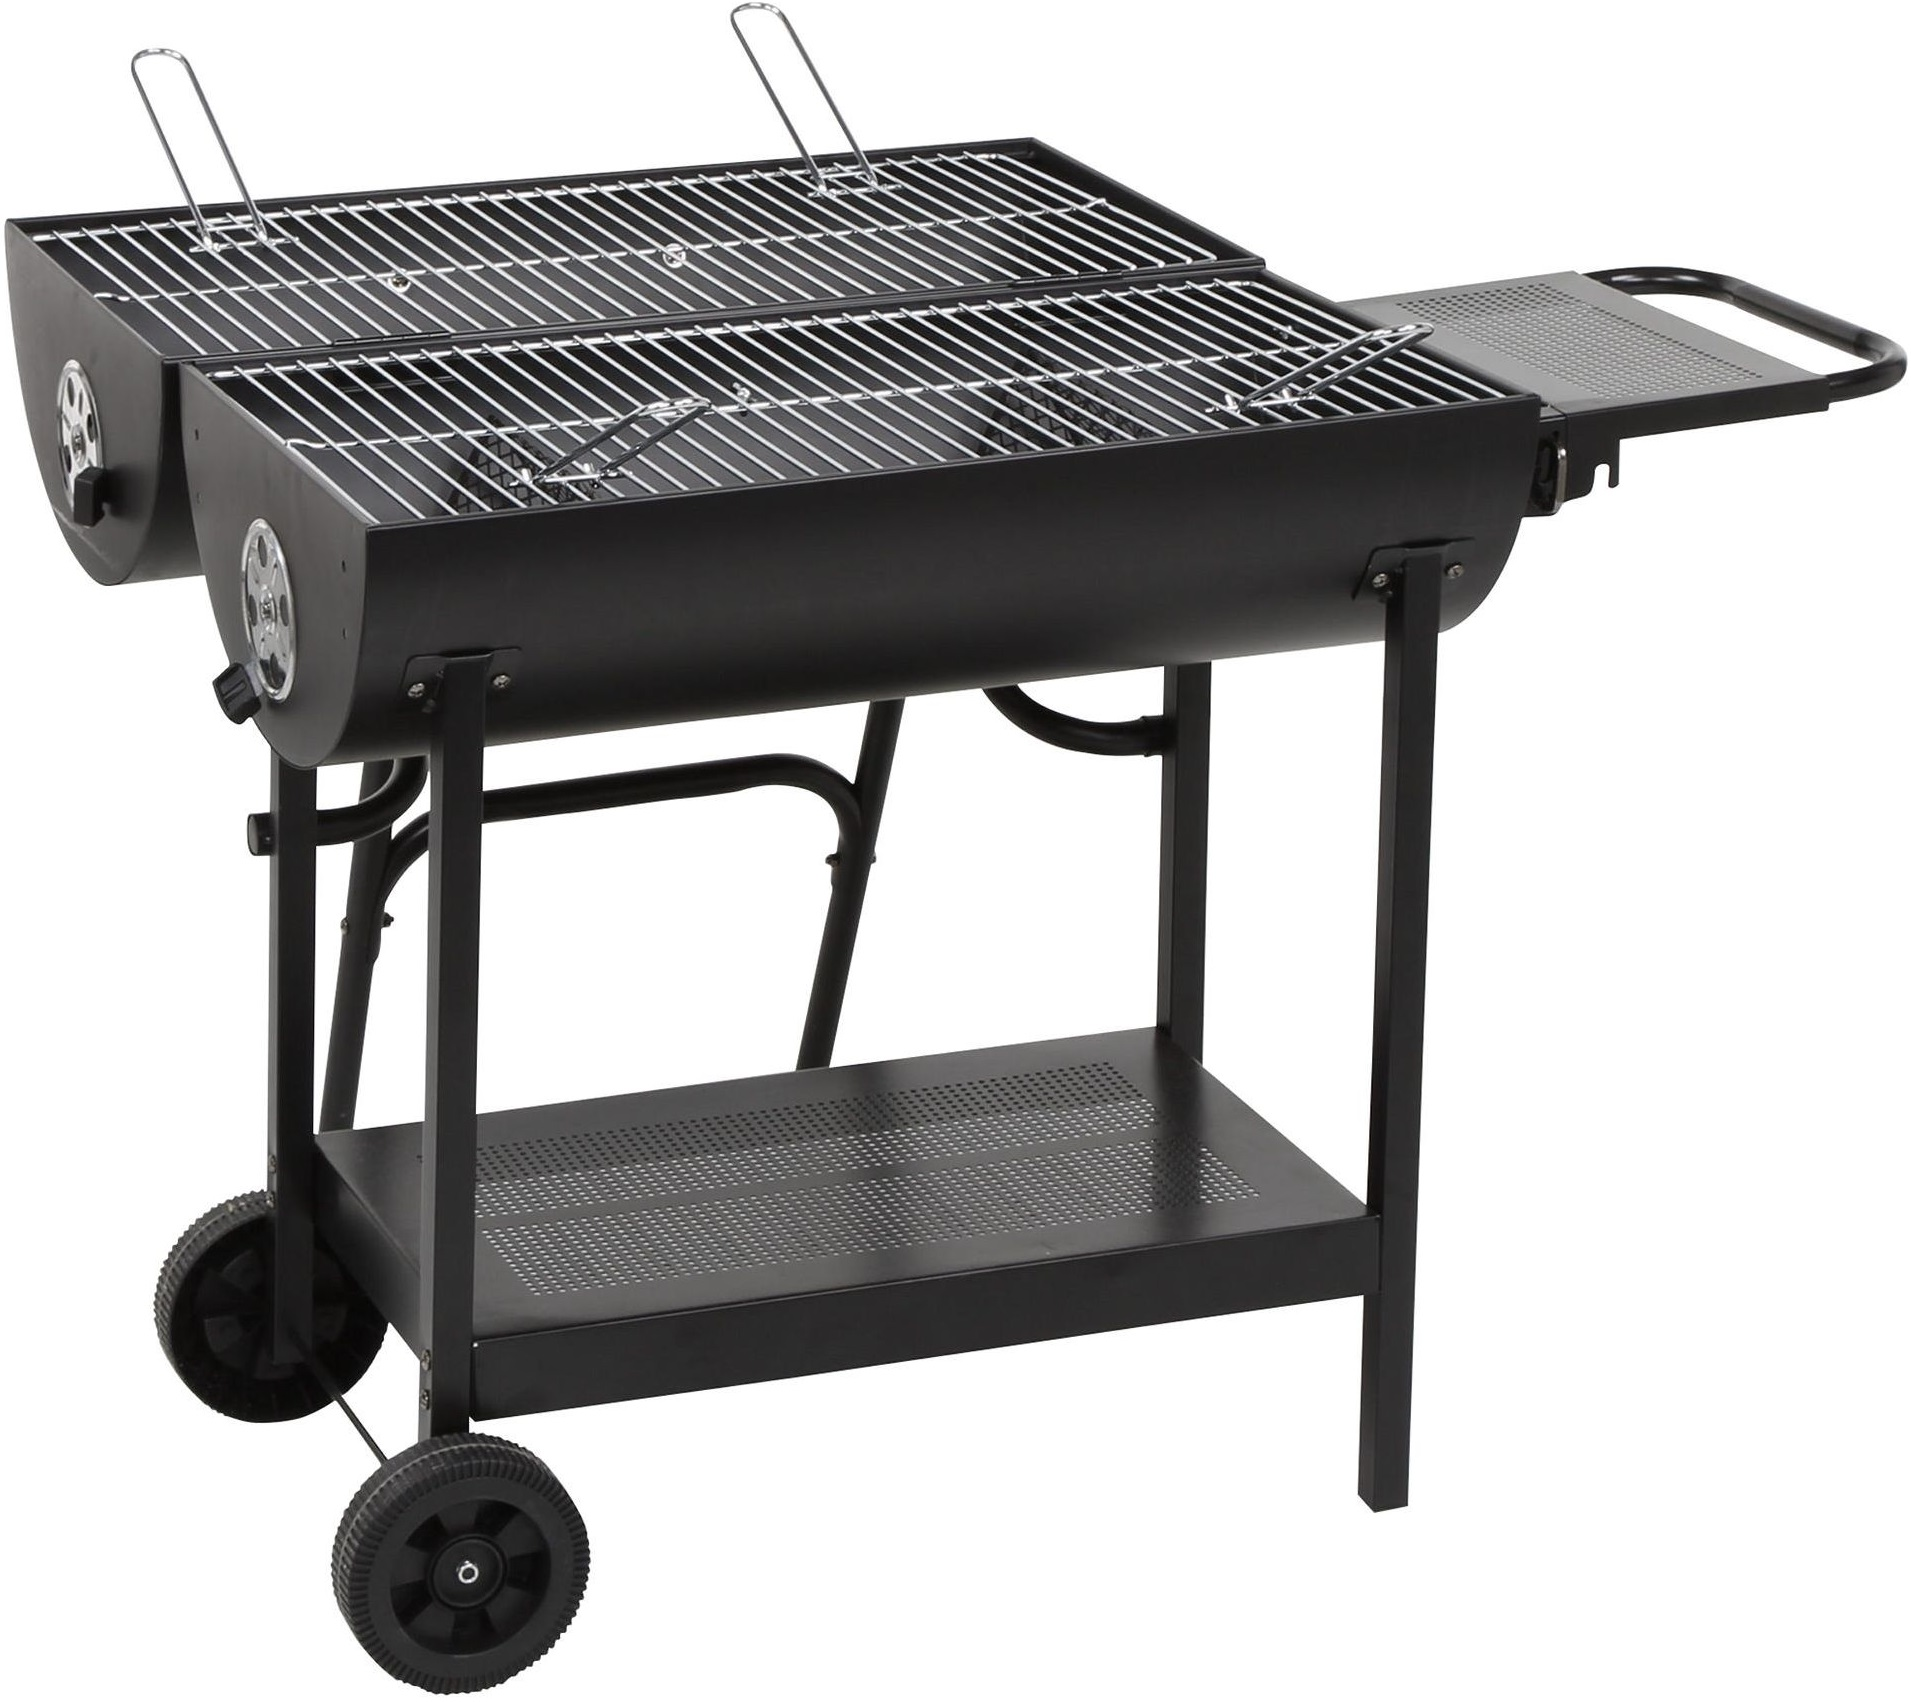 new tesco double sided oil drum bbq charcoal barbecue black. Black Bedroom Furniture Sets. Home Design Ideas